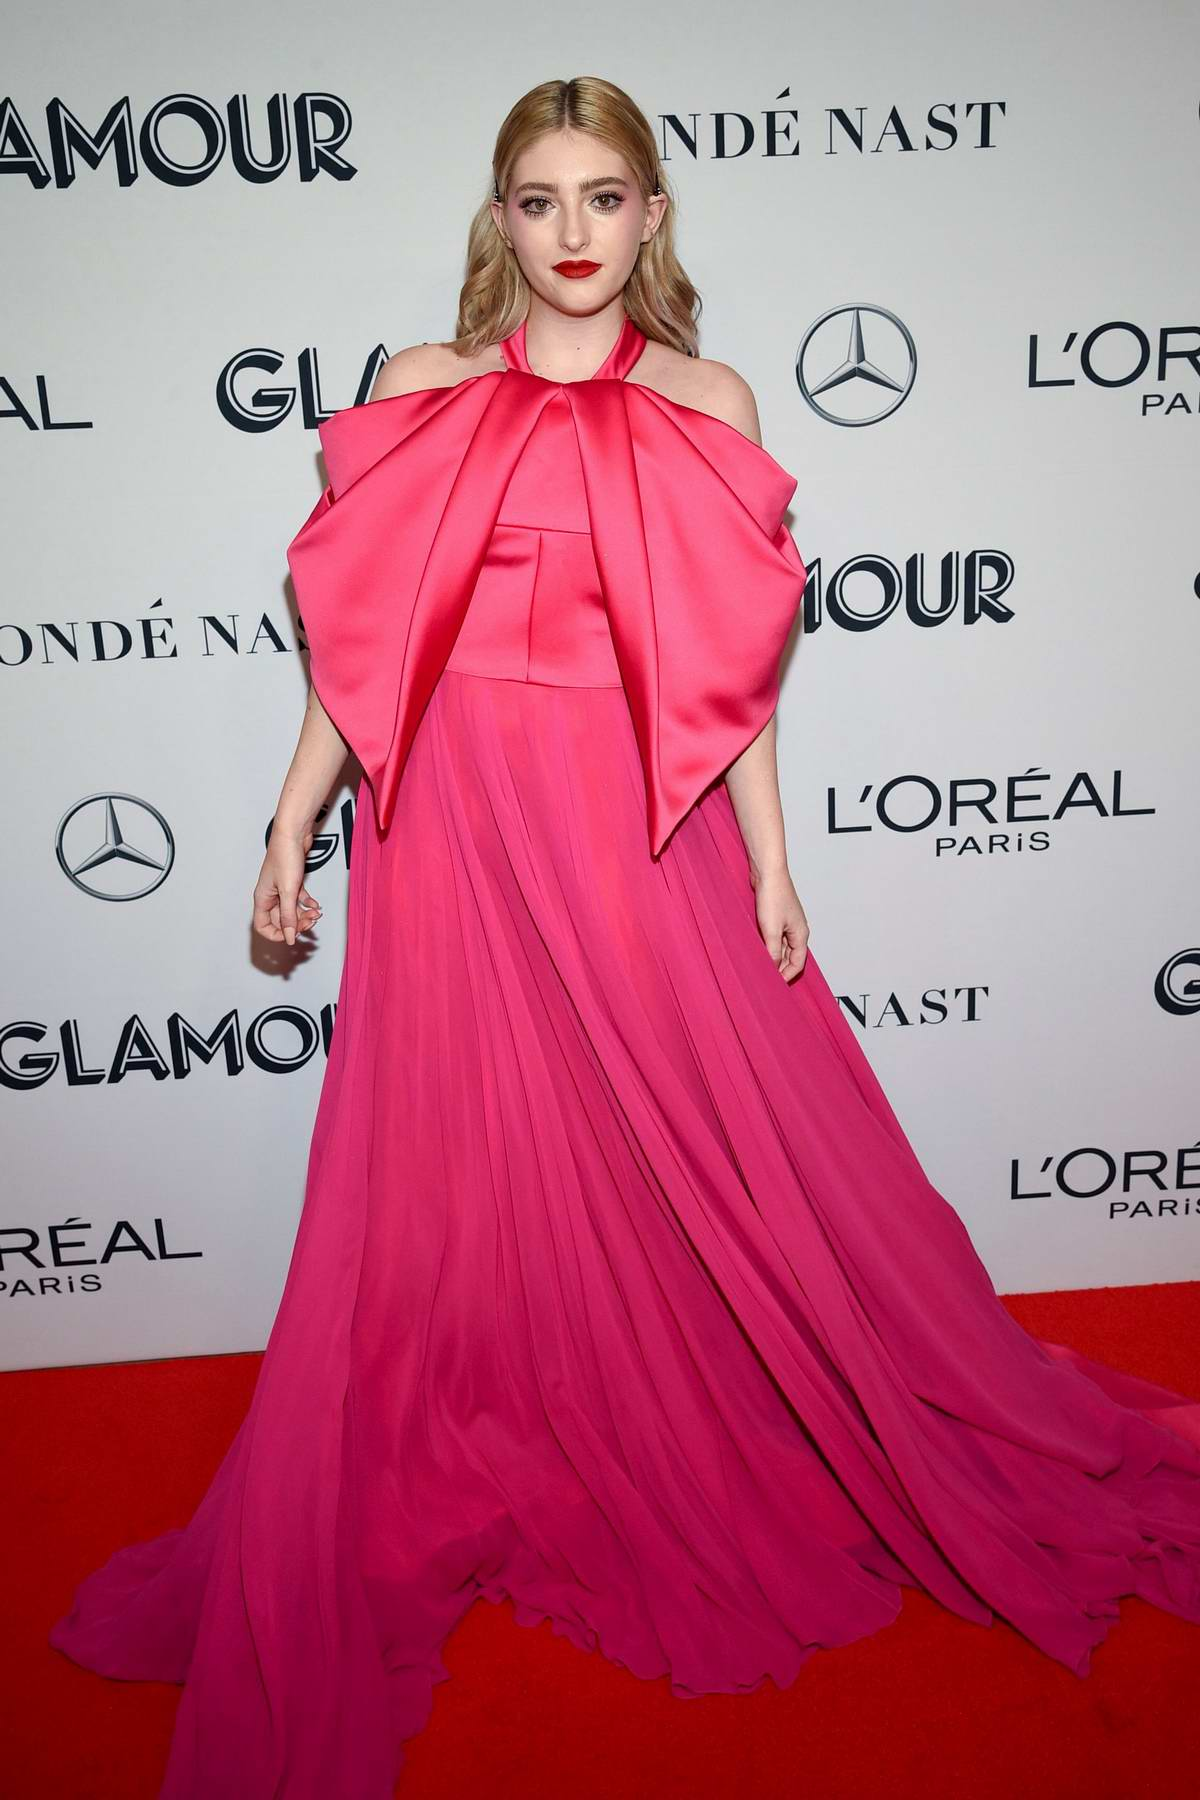 Willow Shields attends the 2019 Glamour Women of the Year Awards at Alice Tully Hall in New York City